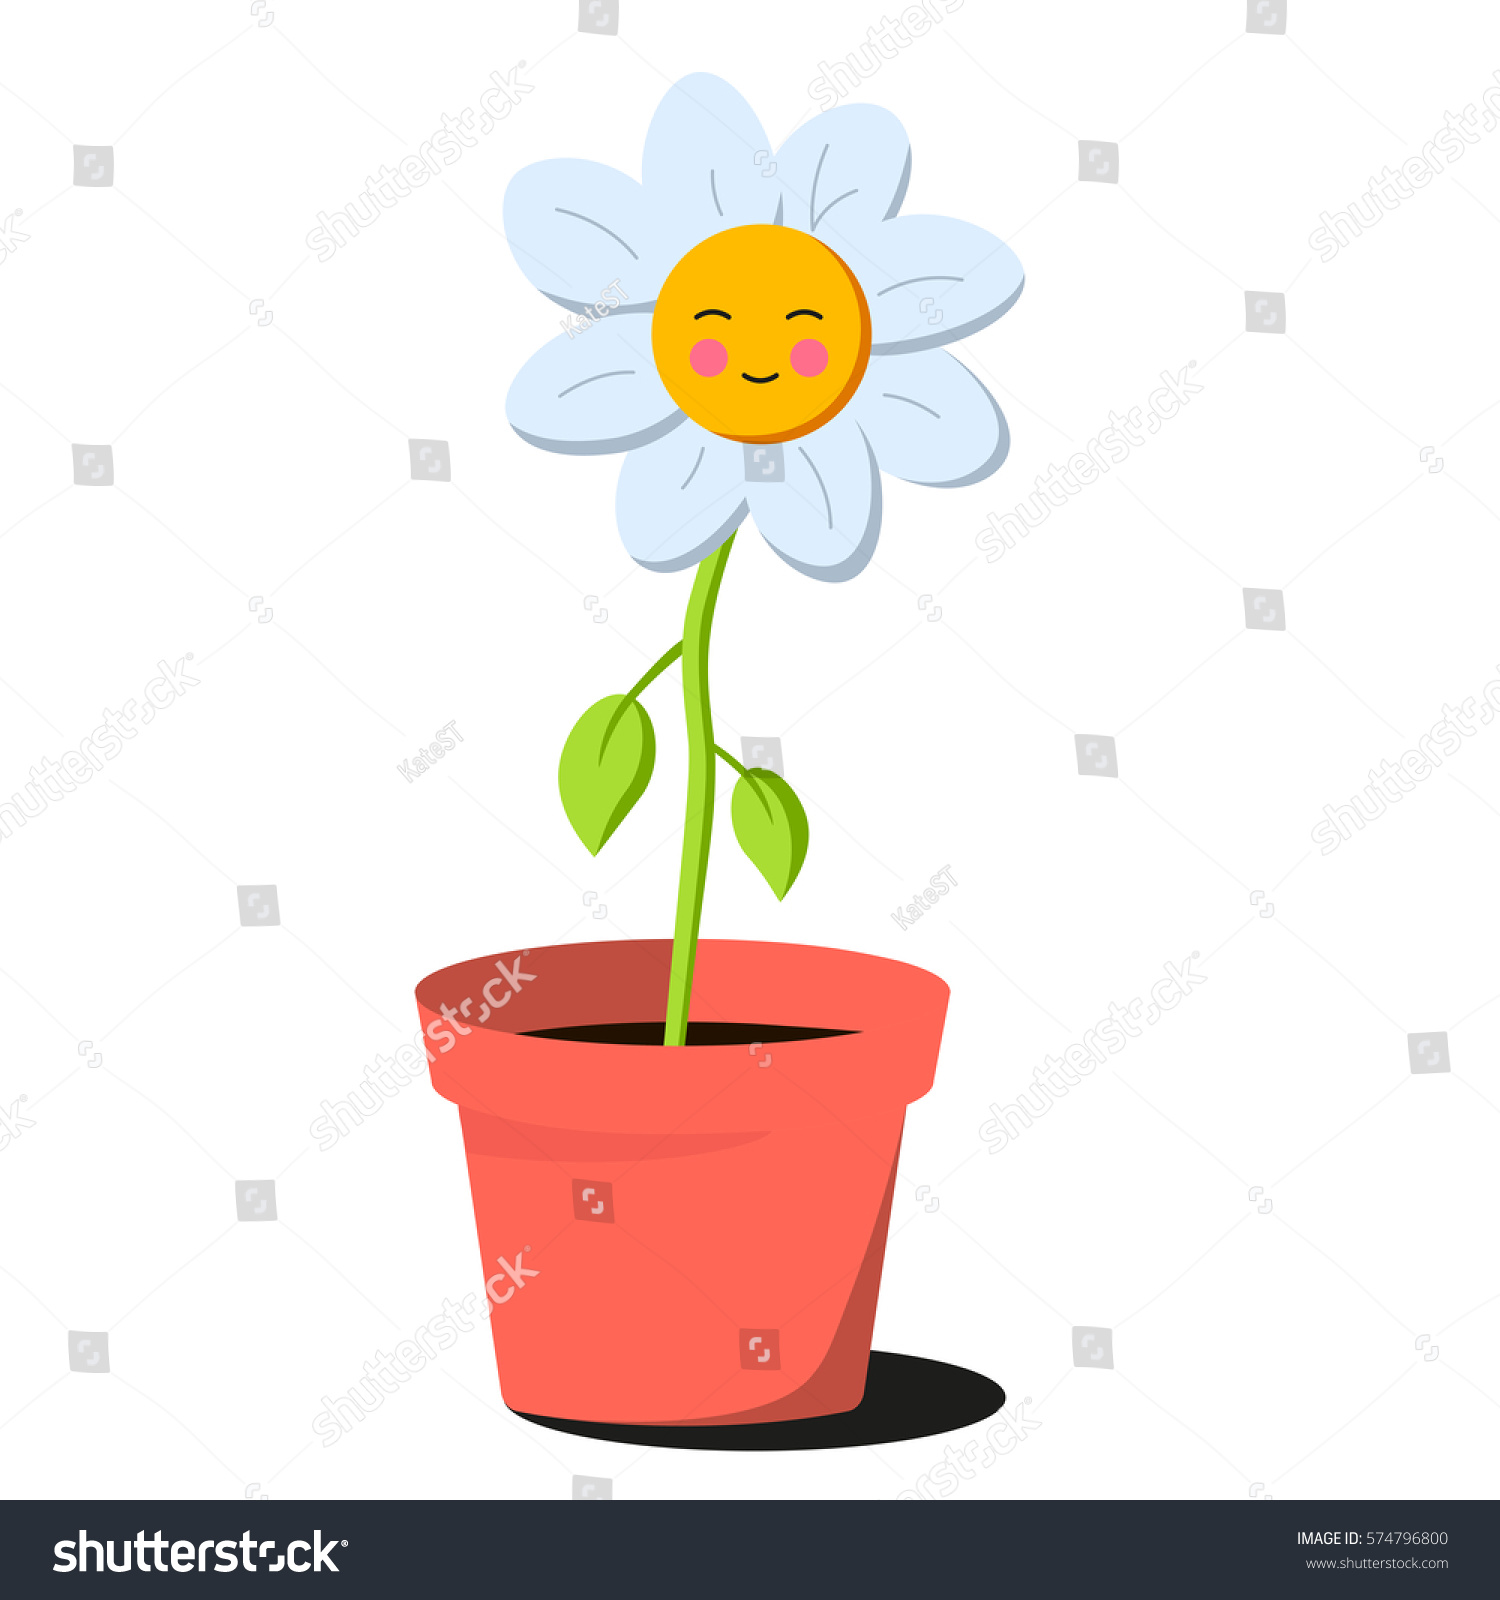 Vector Cartoon Happy Flower Pot Cute Stock Vector 574796800 ...